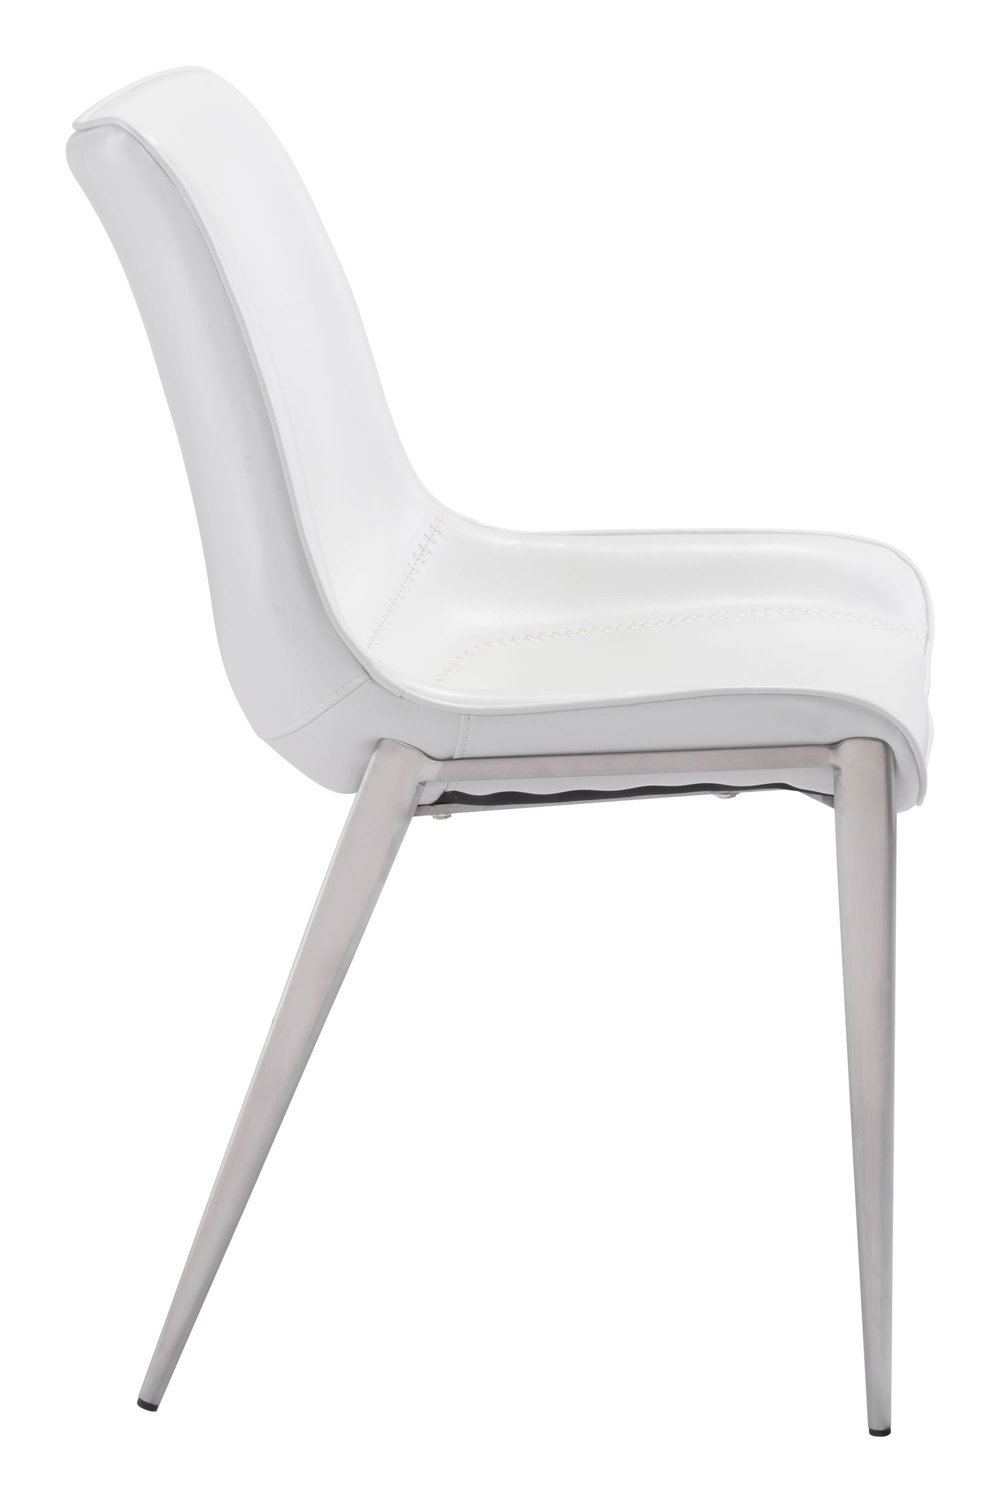 Zuo Modern Contemporary - Magnus Dining Chair - Set of 2 - White & Silver